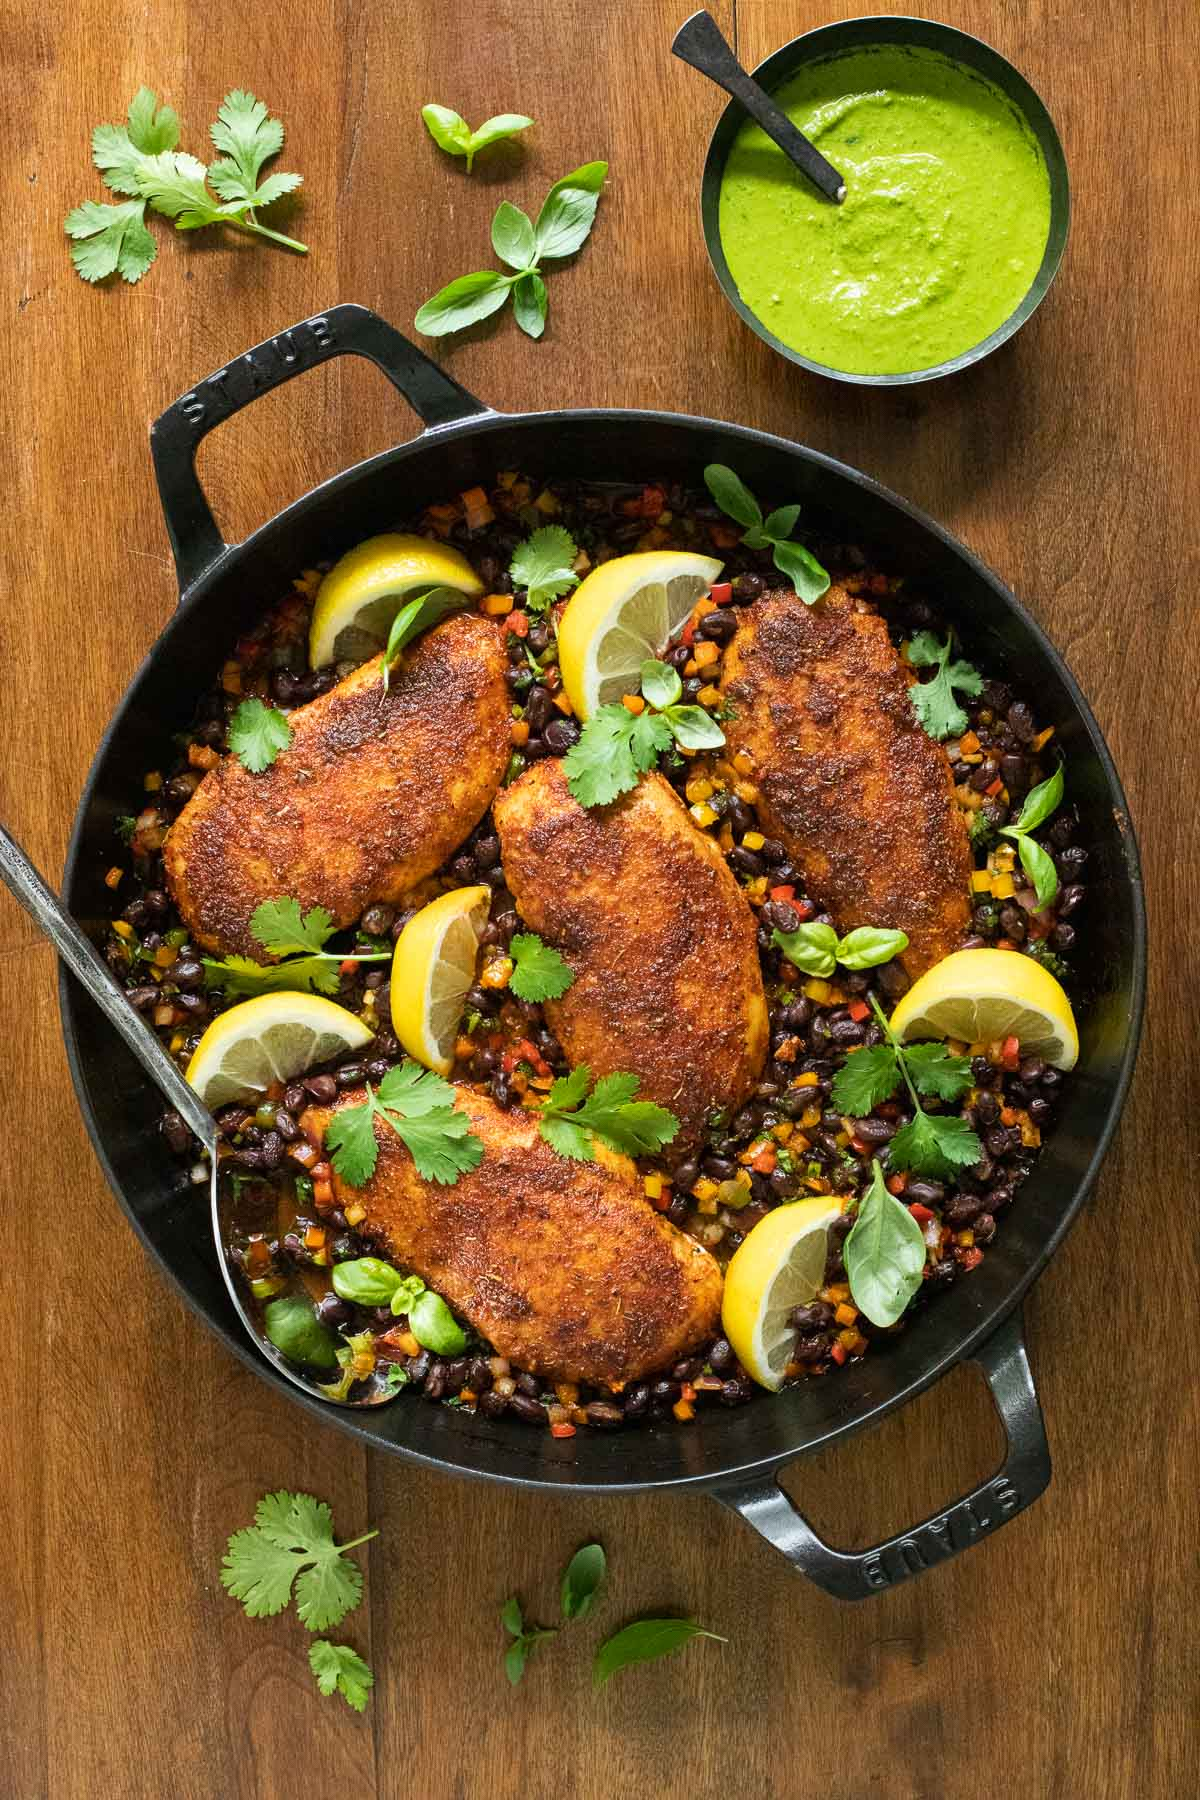 Vertical overhead photo of a Staub frying pan filled with Peruvian Chicken and sauce on a wood table.